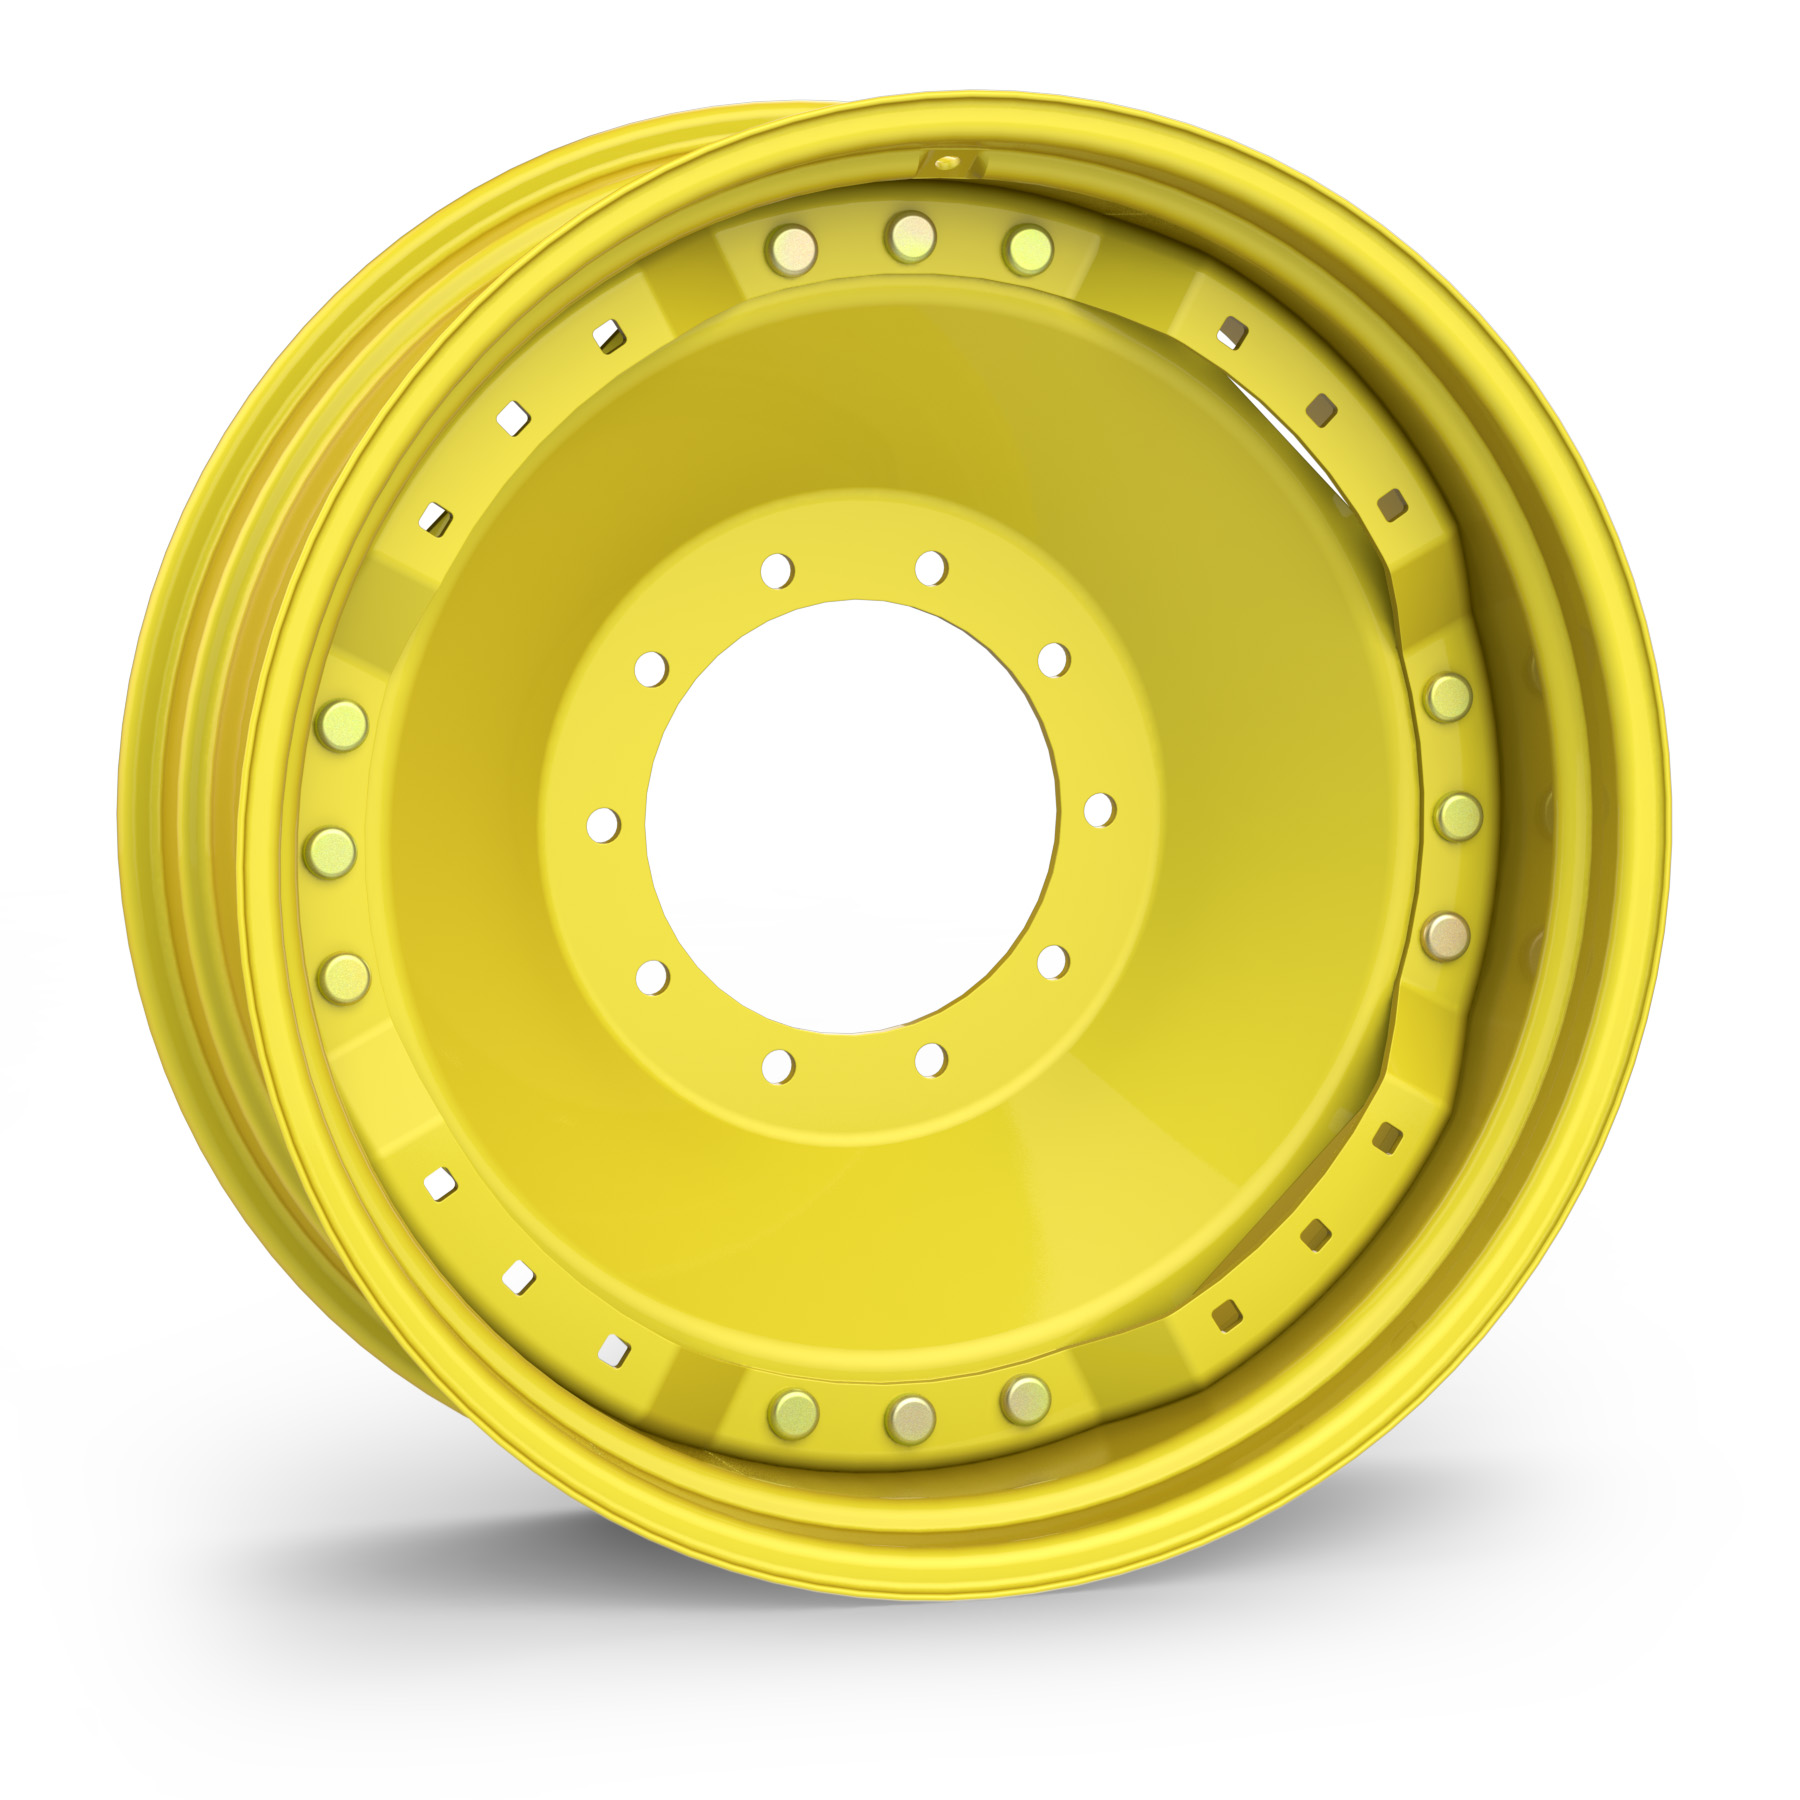 Agricultural Wheels Unverferth Wheel Products For Atlas Jack Plate Wiring Harness Yellow Waffle With Tire